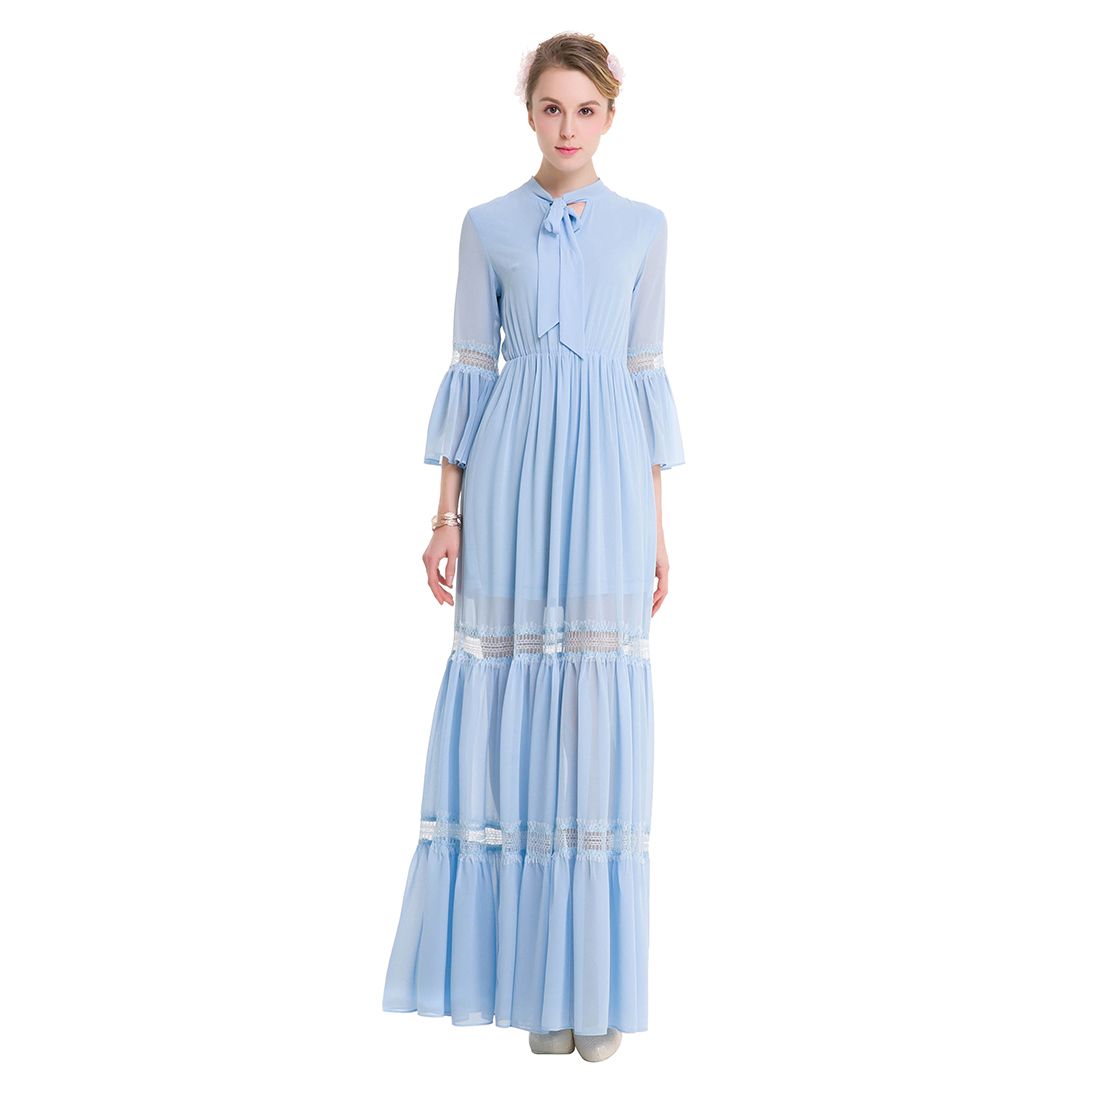 TFGS Original Design New Women Chiffon Long Dress Vintage Retro Bow Three Quarter Flare Sleeve Fairy